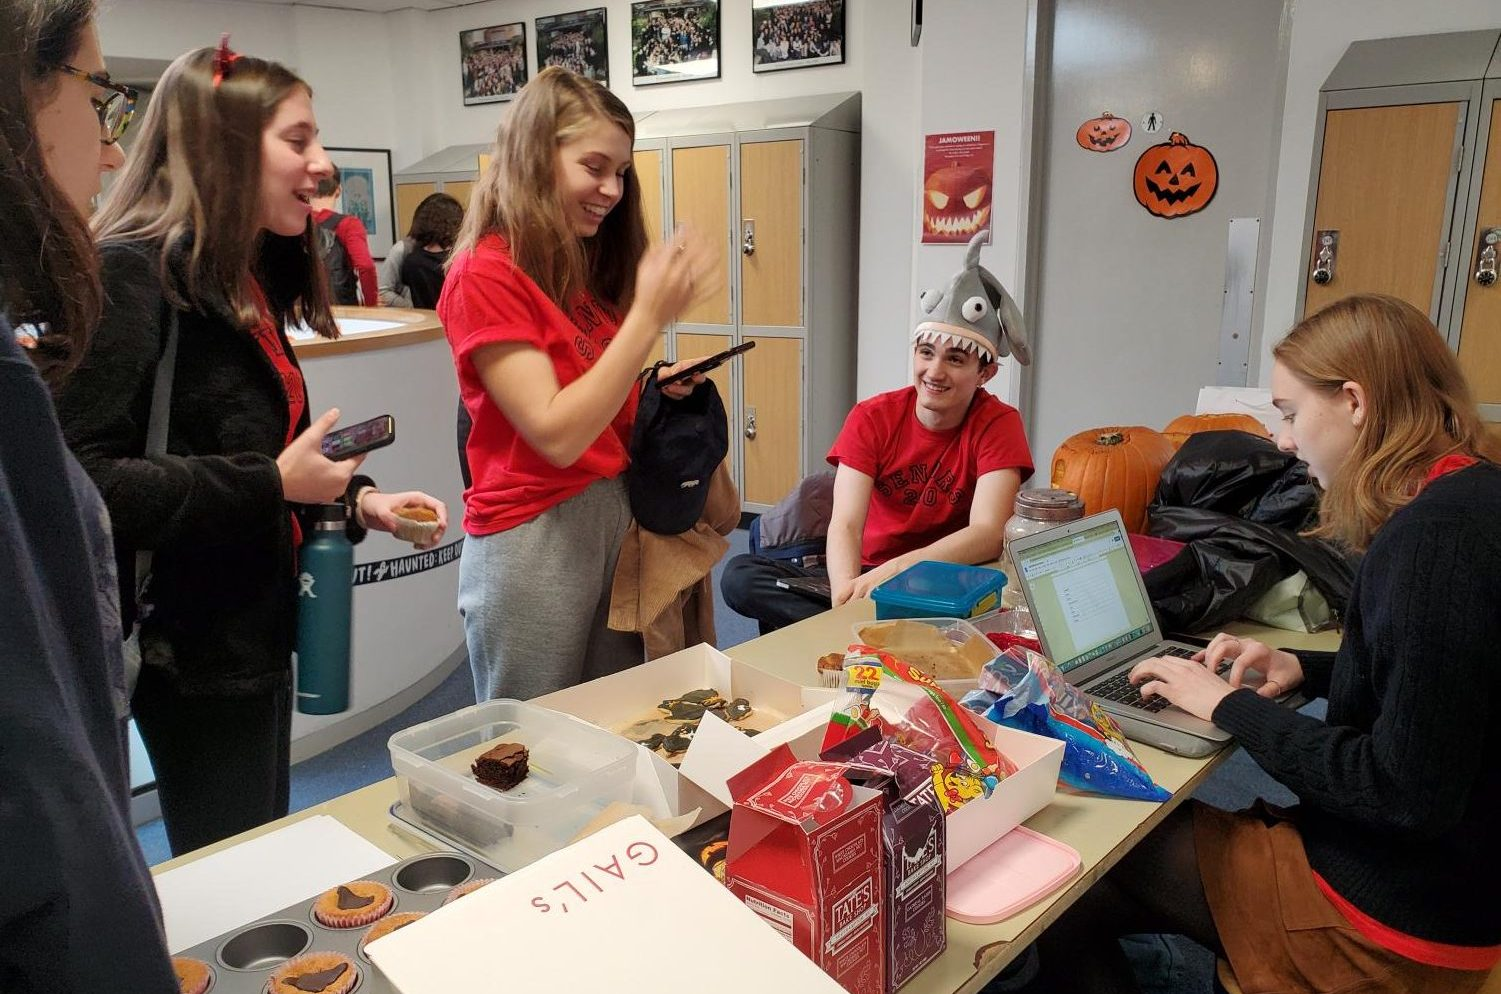 Students exchange art for sweet treats at the Jamoween trade on Oct. 31. The Jambalaya Literary Magazine hosts the annual event to garner community submissions and connect with contributors.